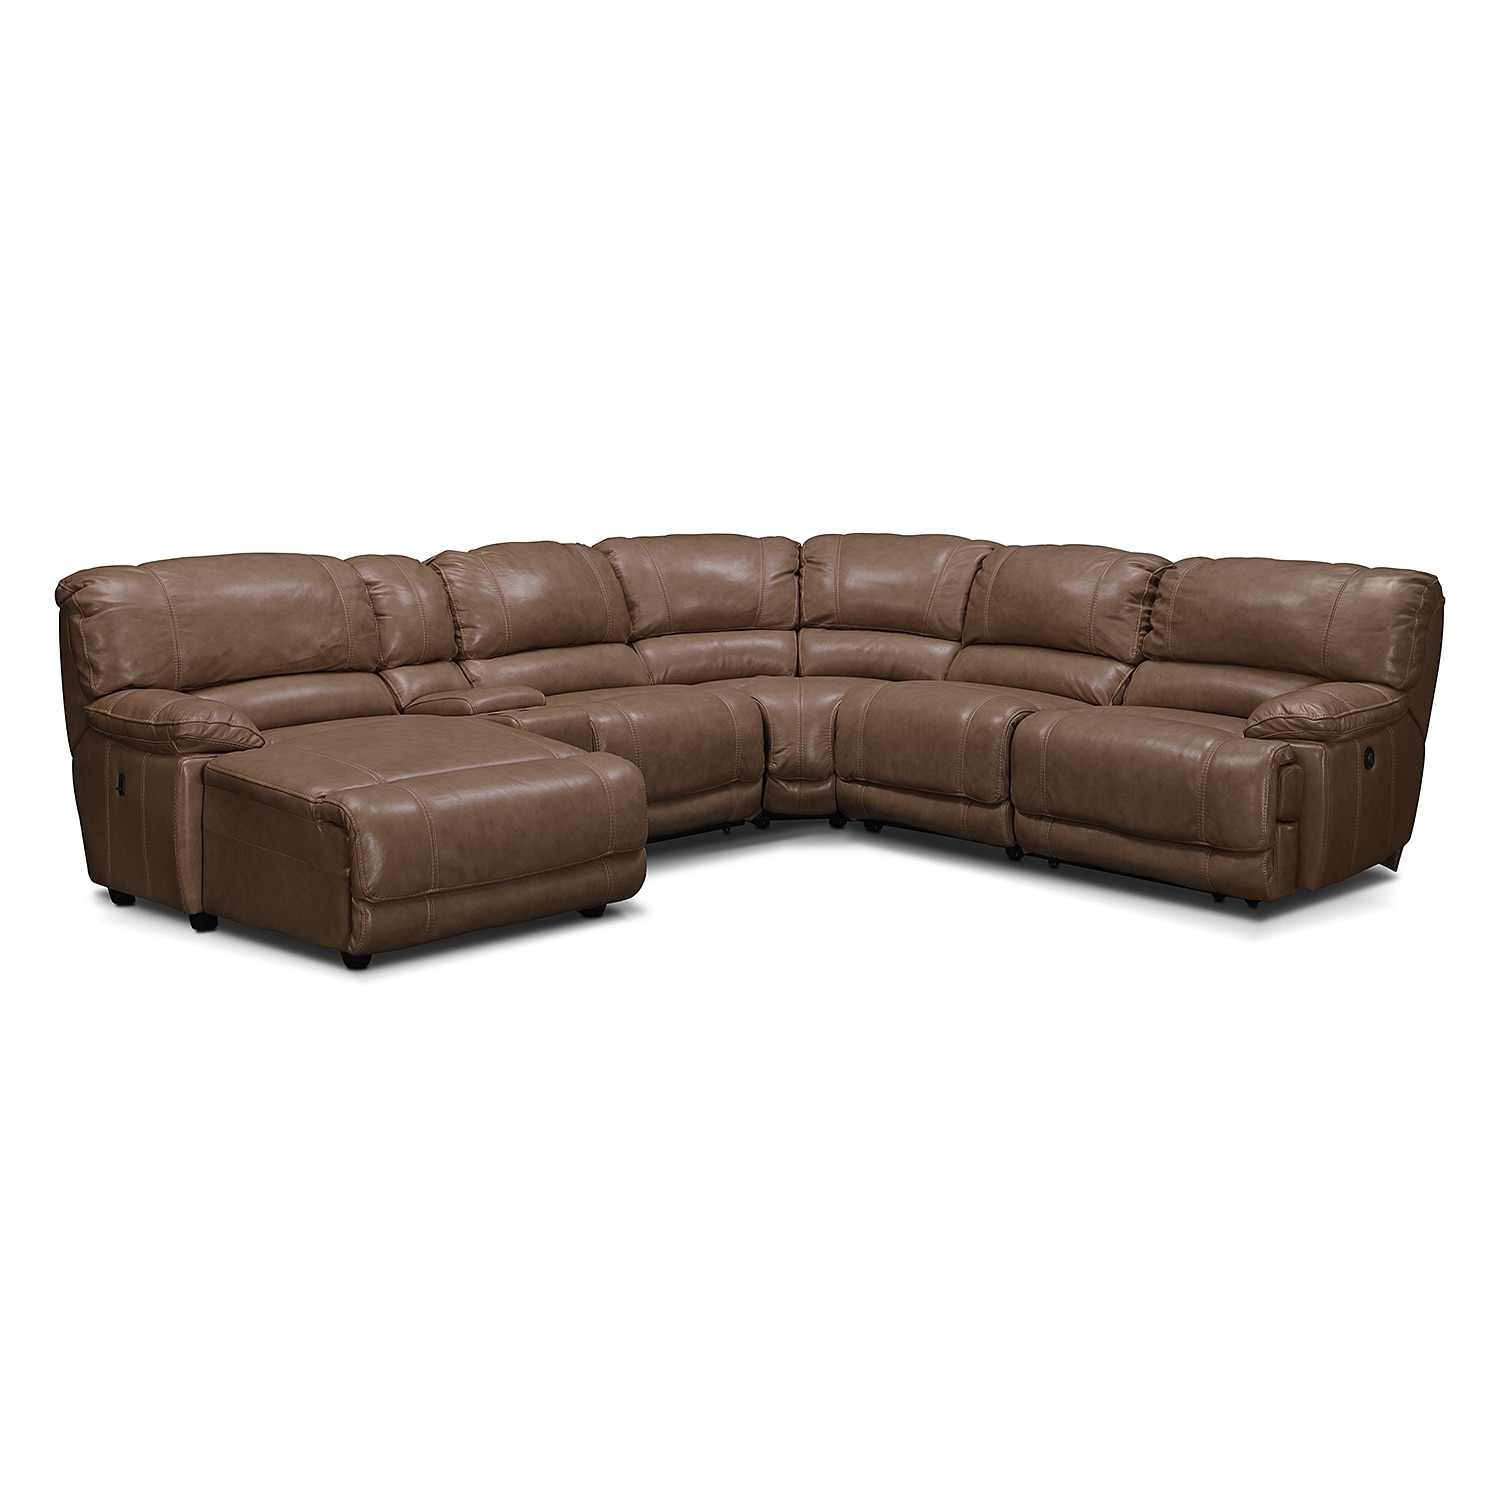 St malo ii 6 pc power reclining sectional reverse for Sectional sofas power recliners